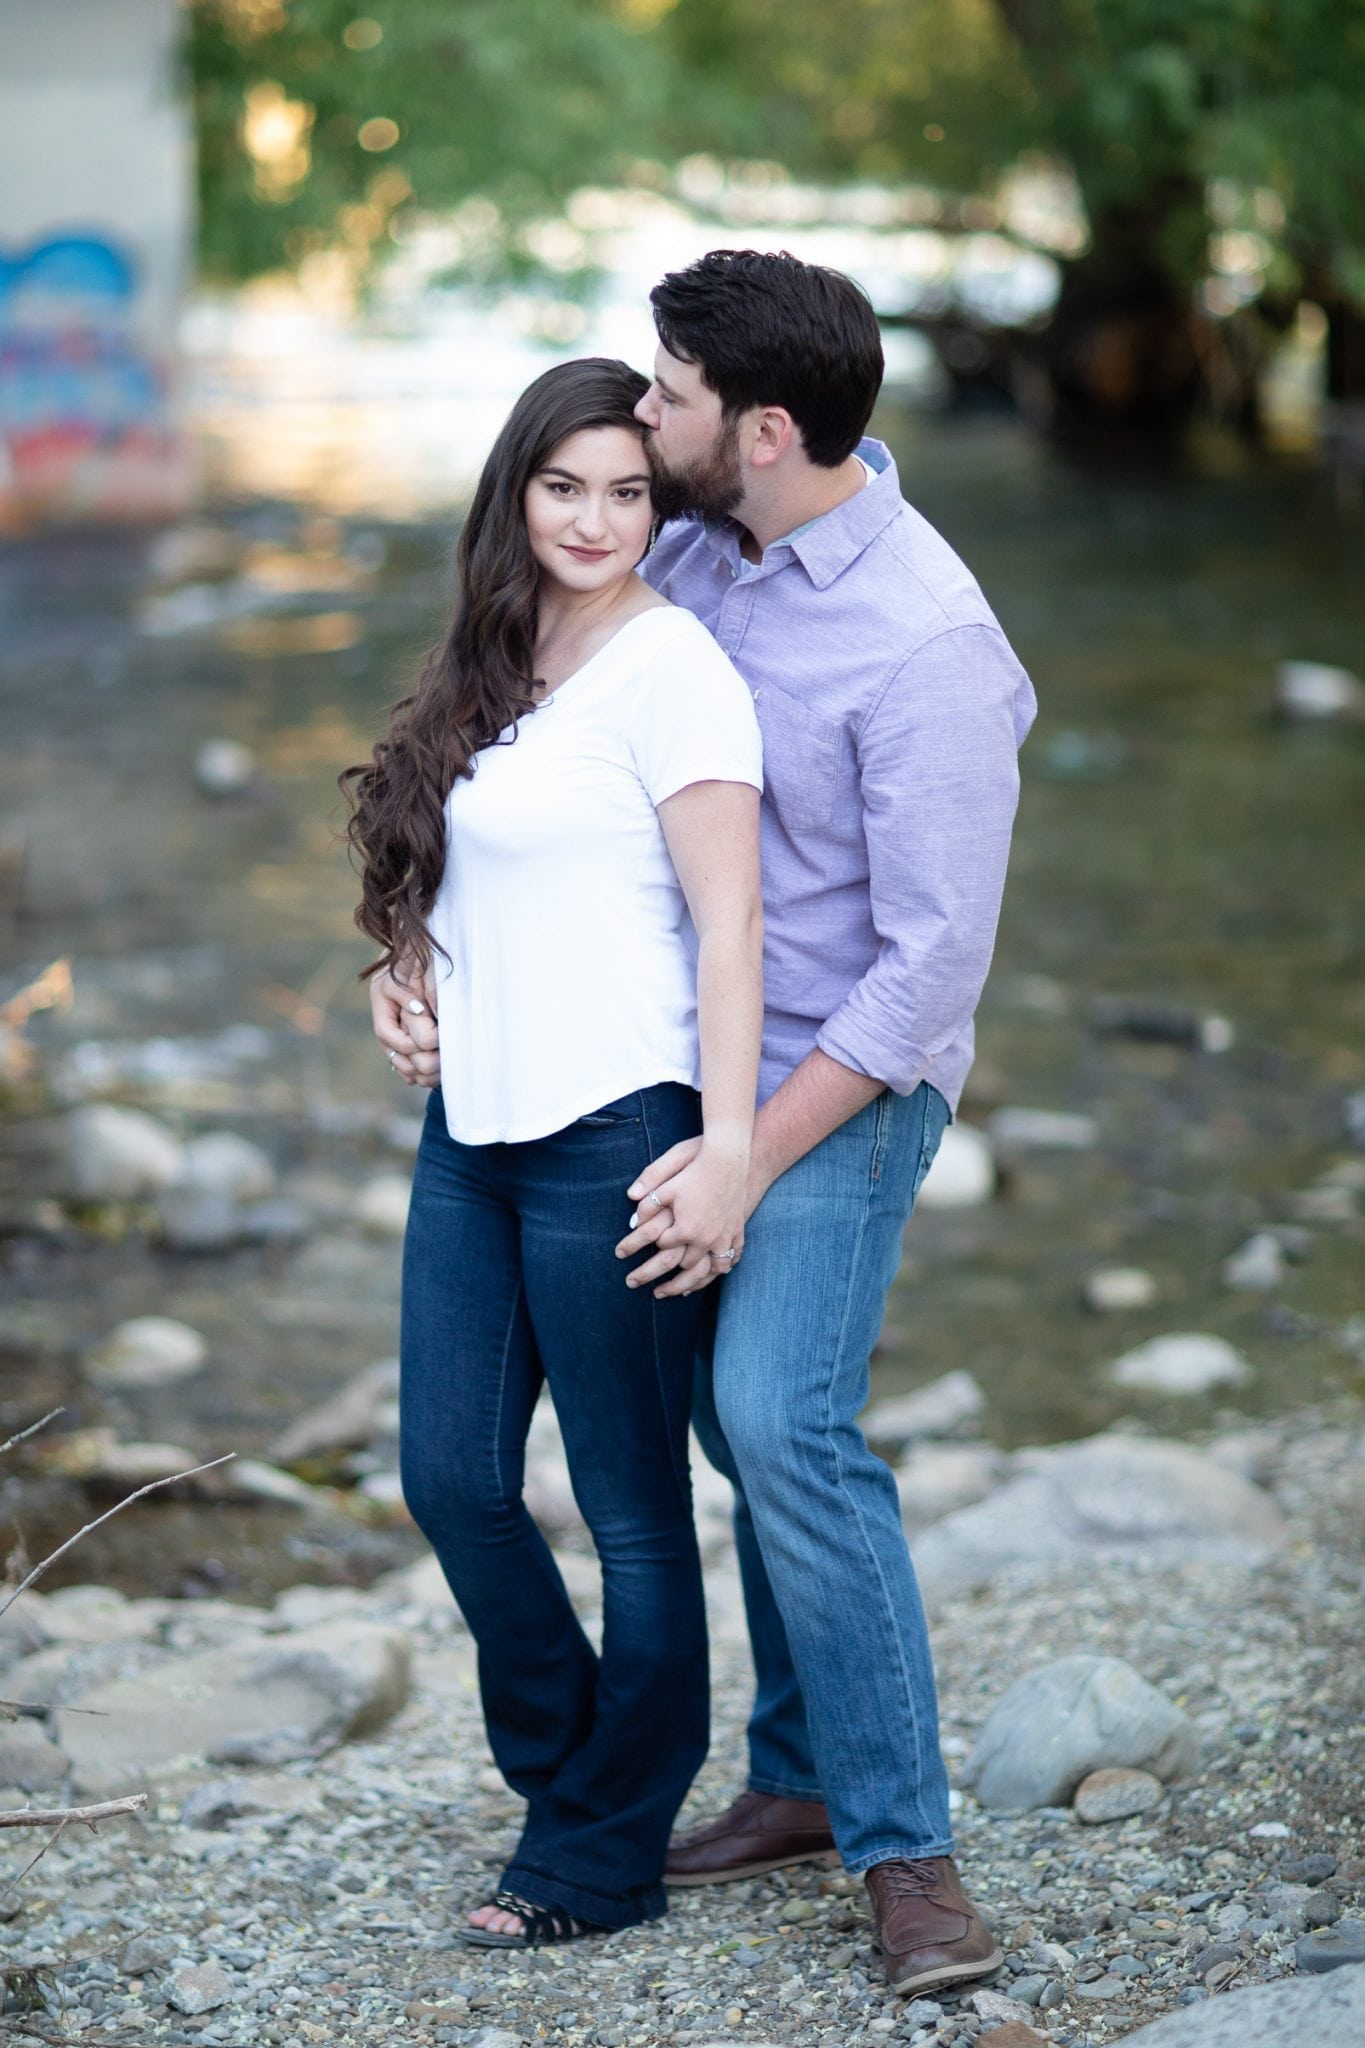 Spokane Engagement photos Franklin Photography-0005